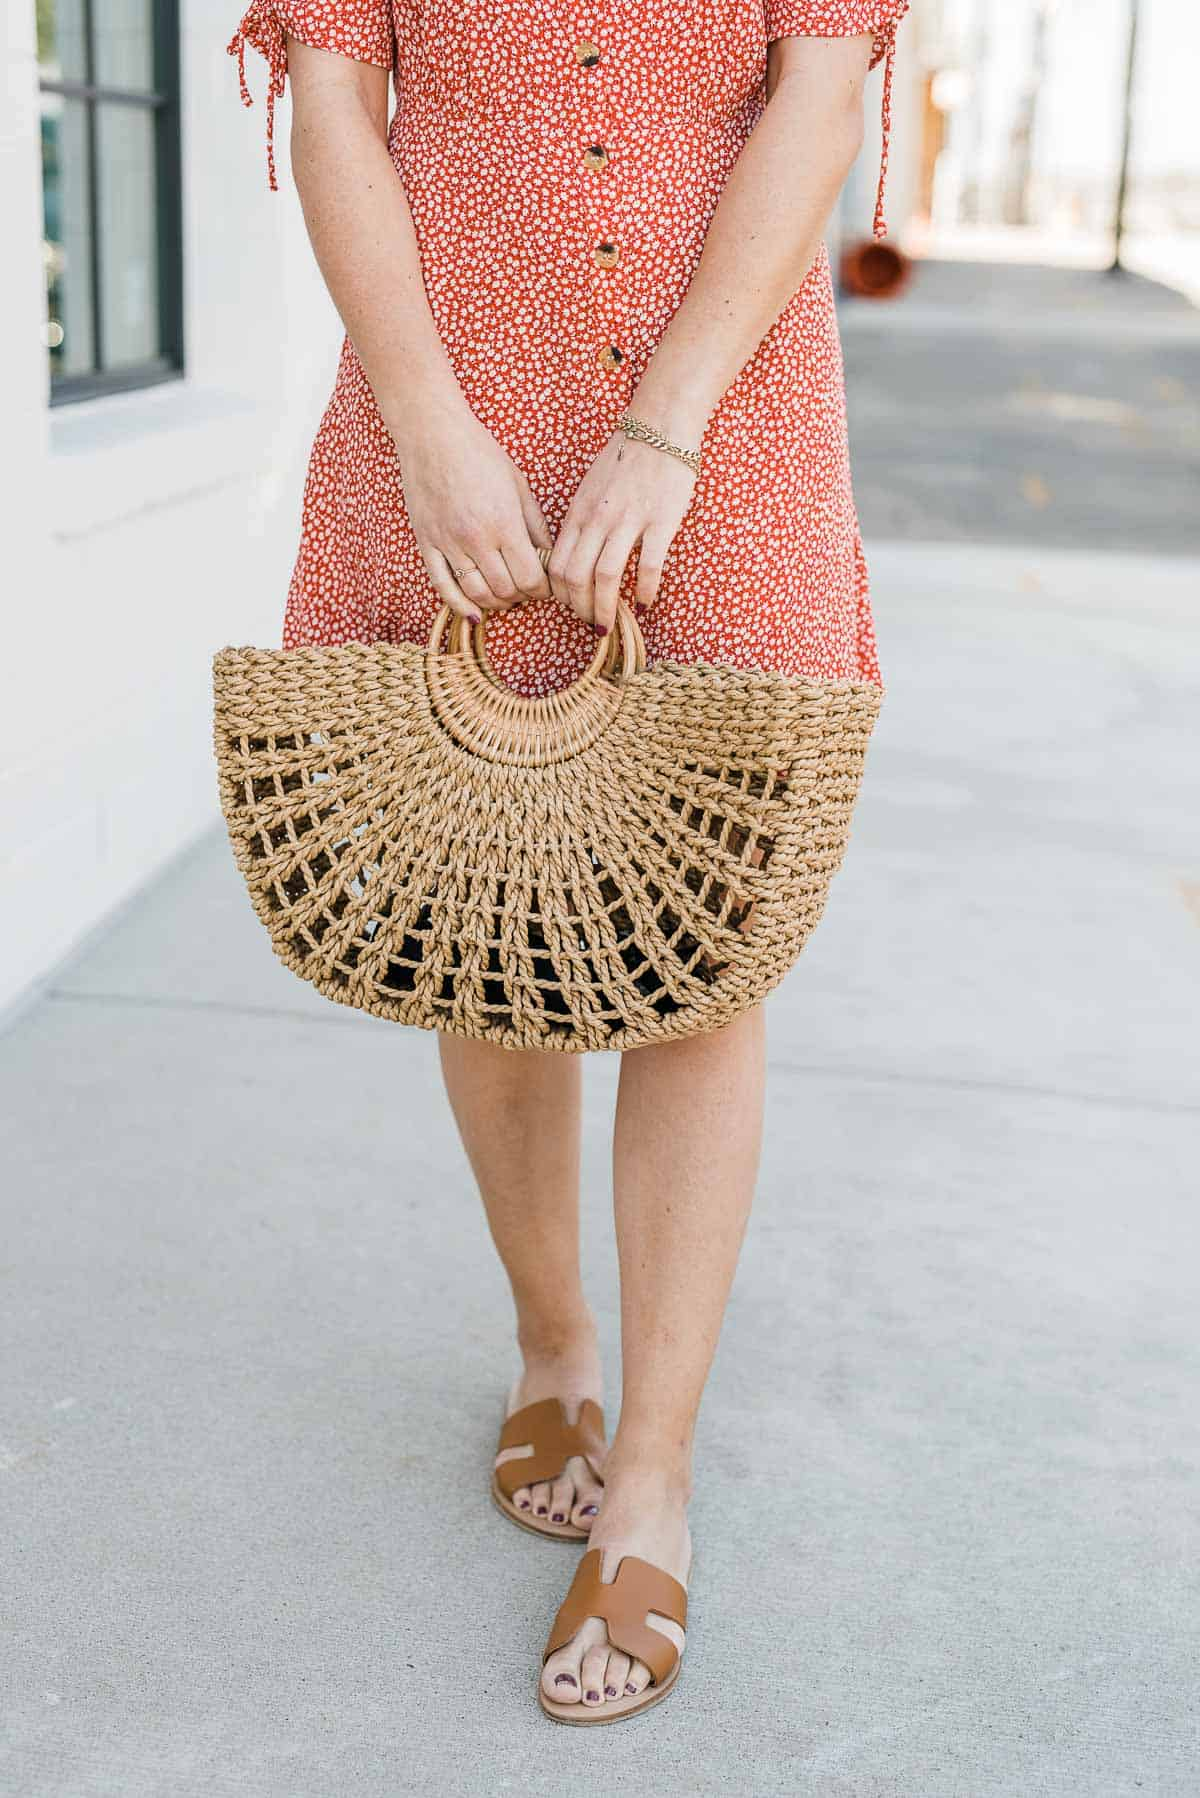 My Style Vita's outfit details: casual summer printed dress, Greece Sandals and straw bag.